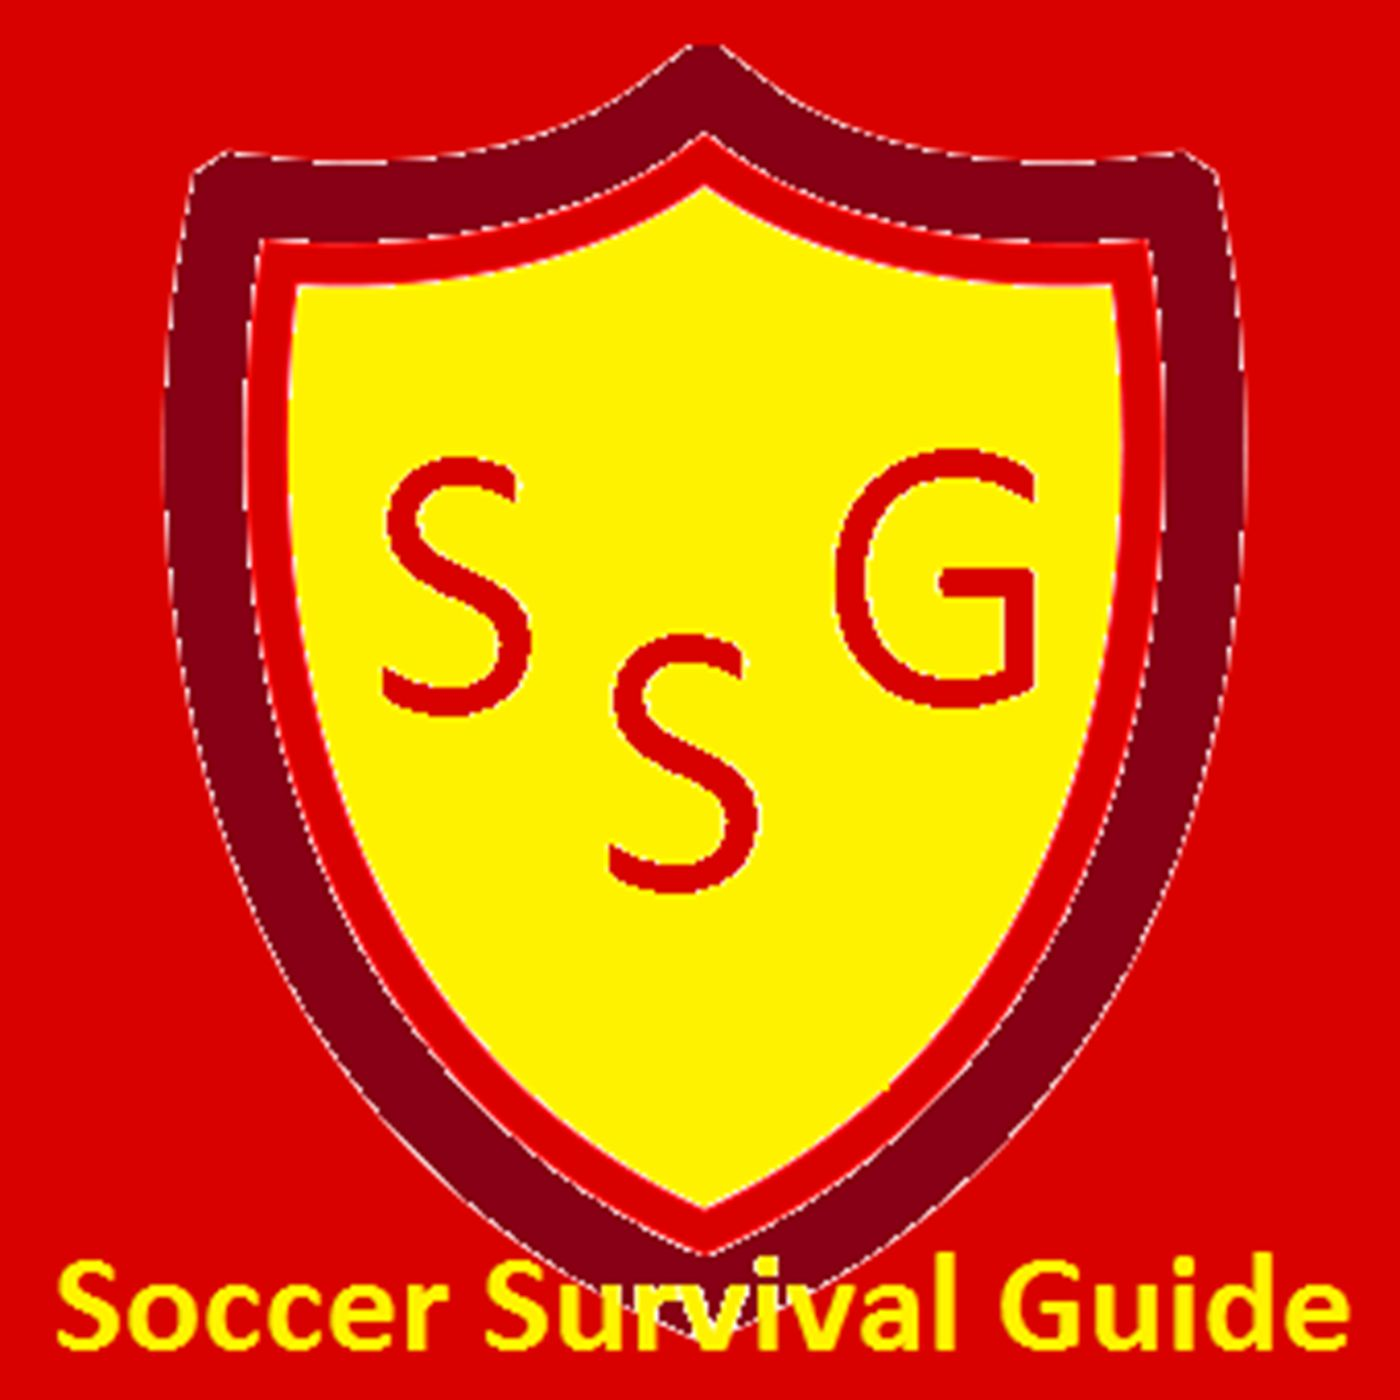 Soccer Survival Guide